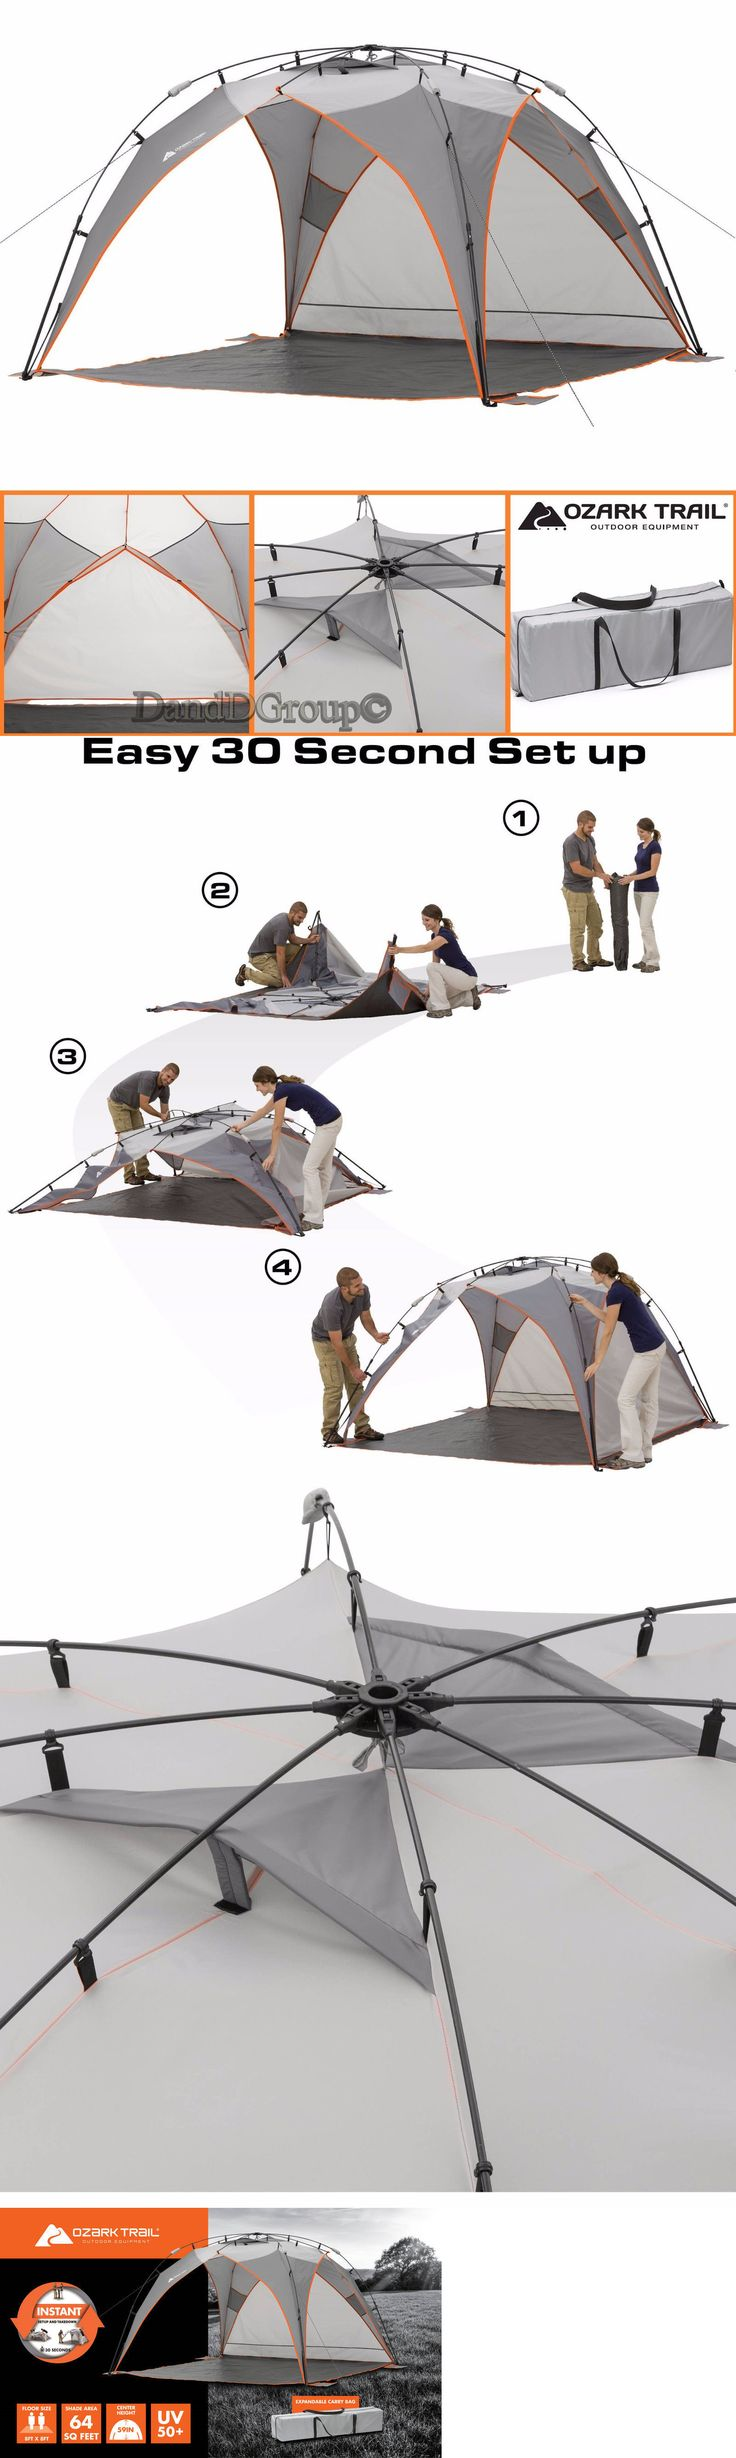 Canopies and Shelters 179011: Ozark Trail Sun Shade Tent 8 X8 Instant Portable Beach Outdoor Shelter Camping -> BUY IT NOW ONLY: $74.99 on eBay!